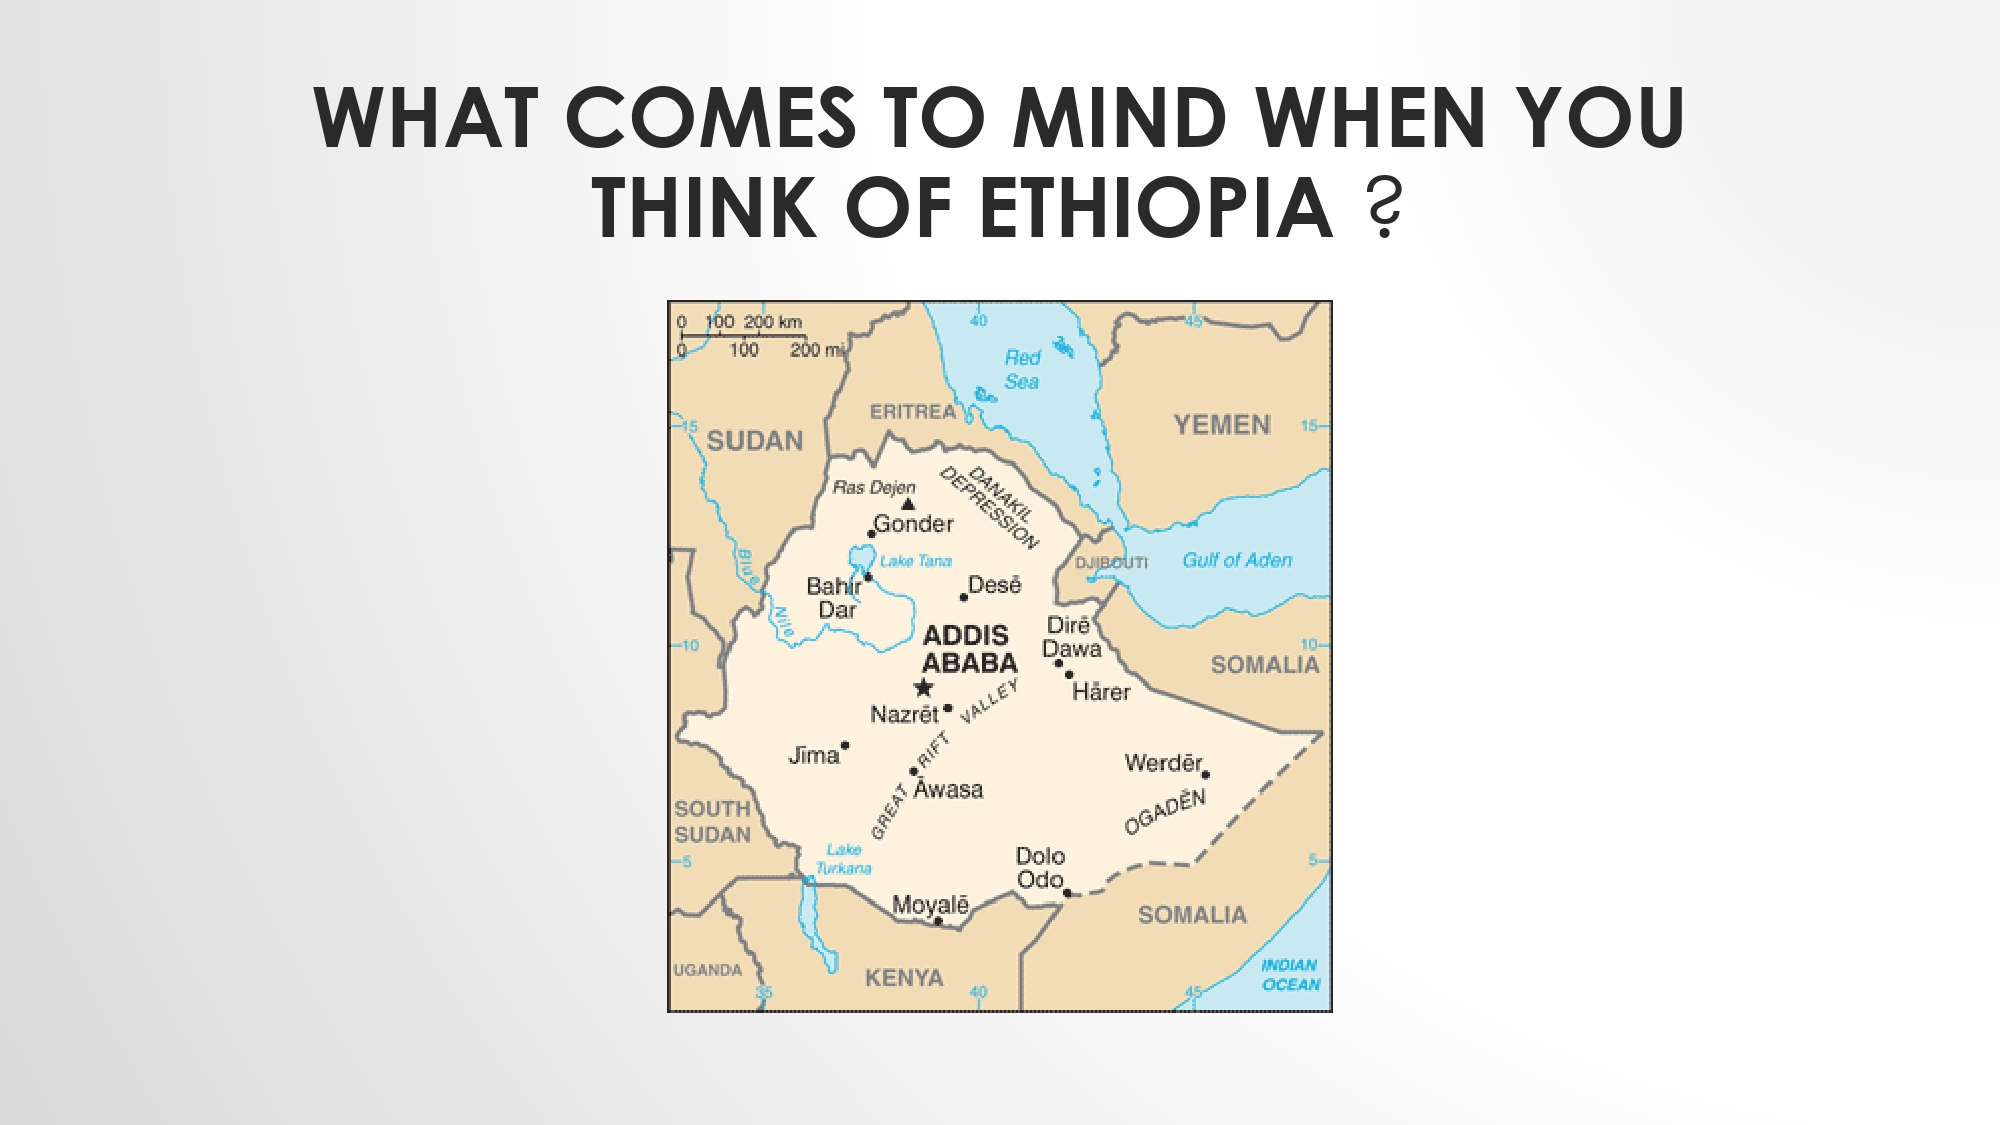 Ethiopia  (1)-3_pages-to-jpg-0001.jpg